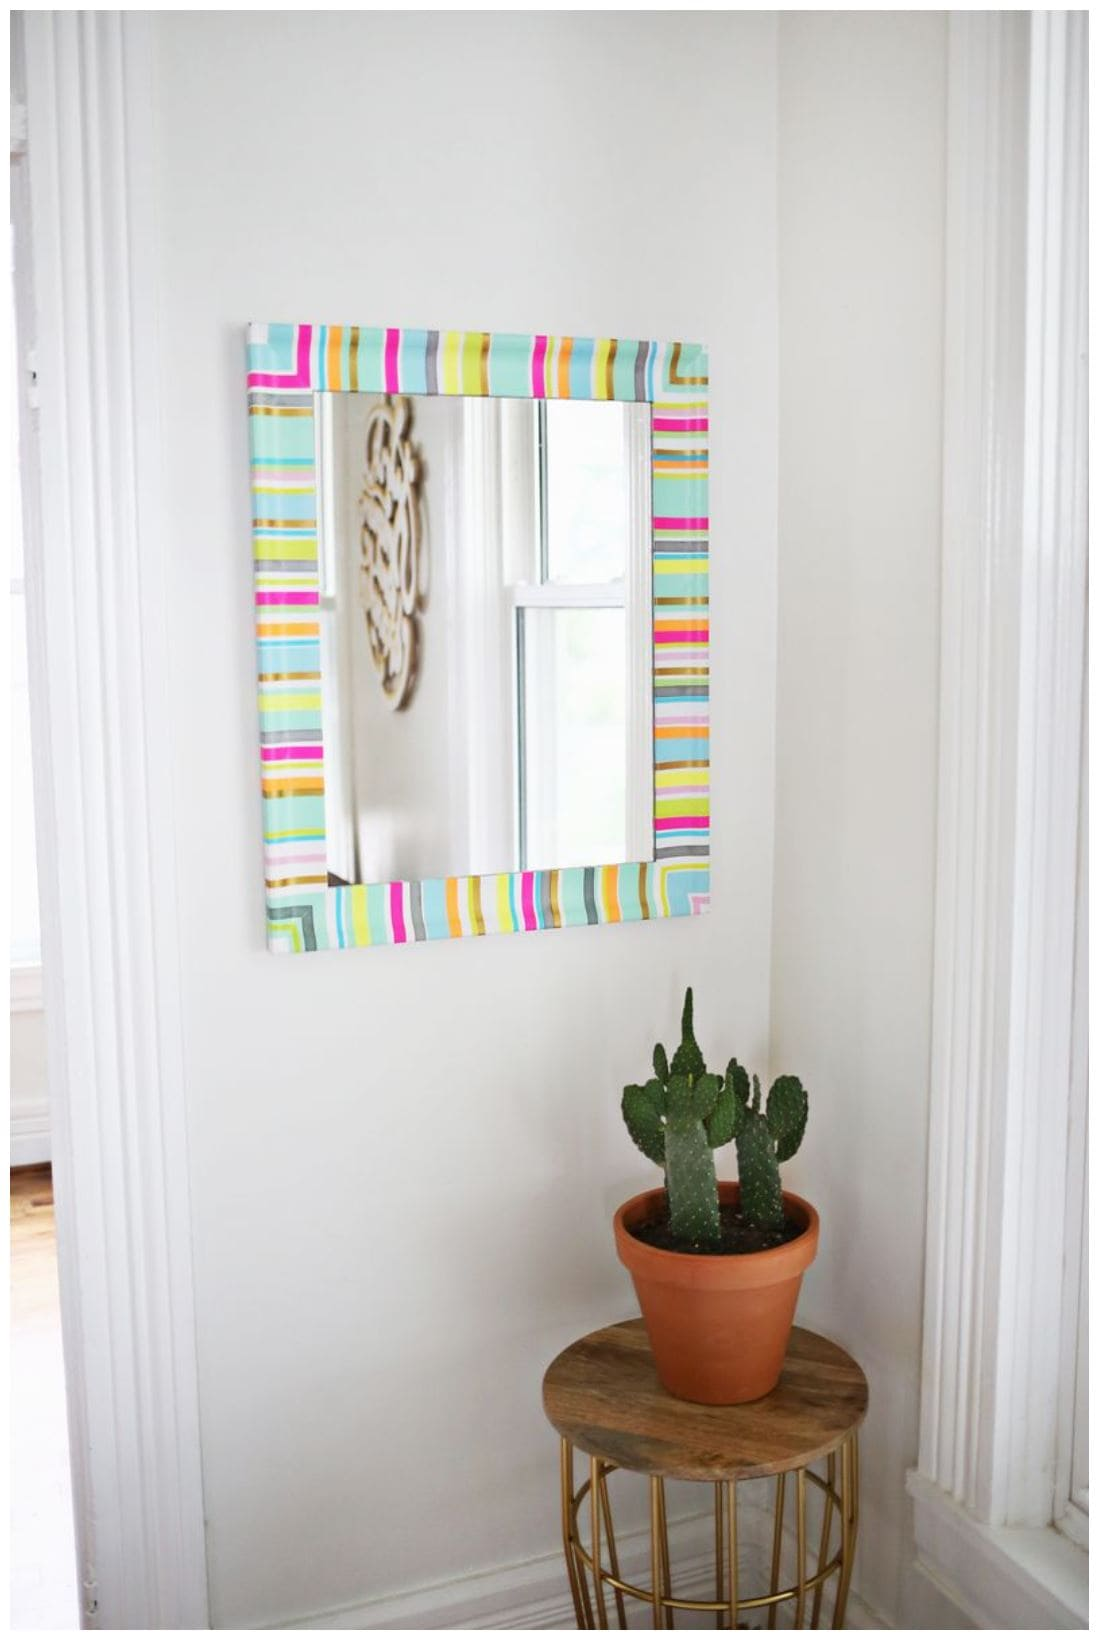 A white mirror decorated with colorful strips of washi tape hanging on a white wall.